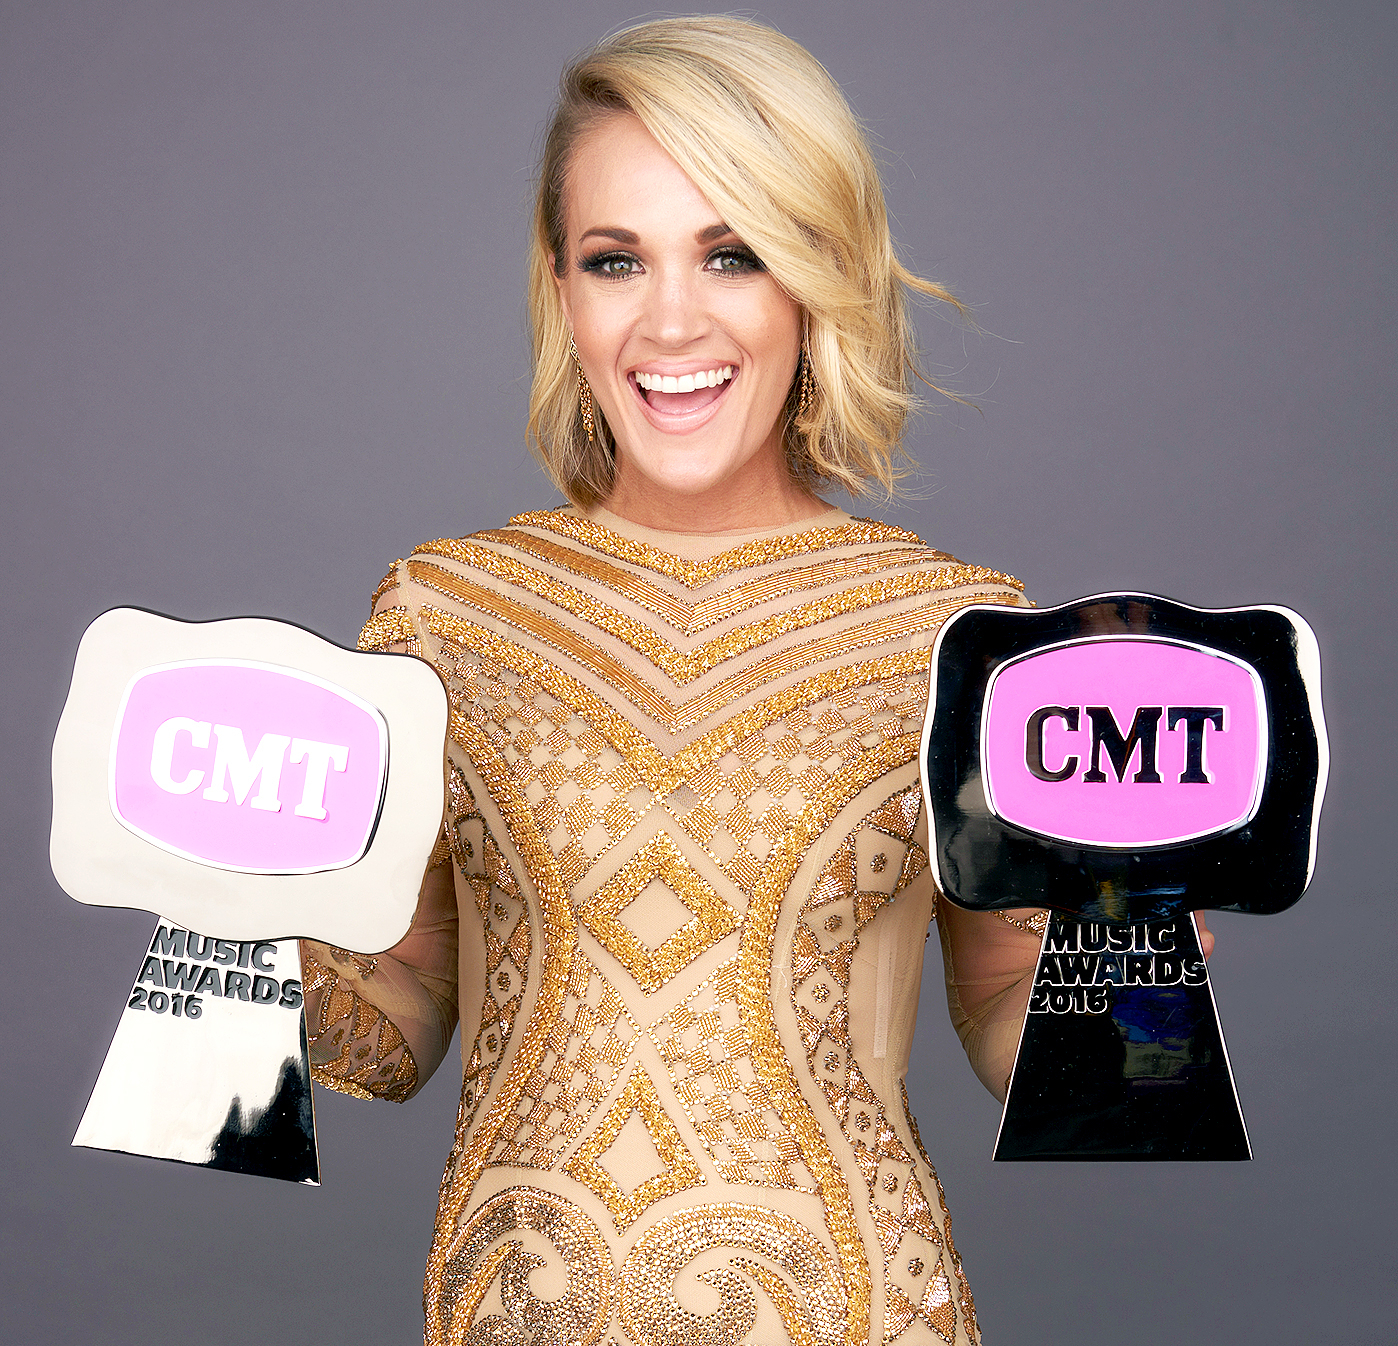 Carrie Underwood poses with her CMT Awards in 2016.